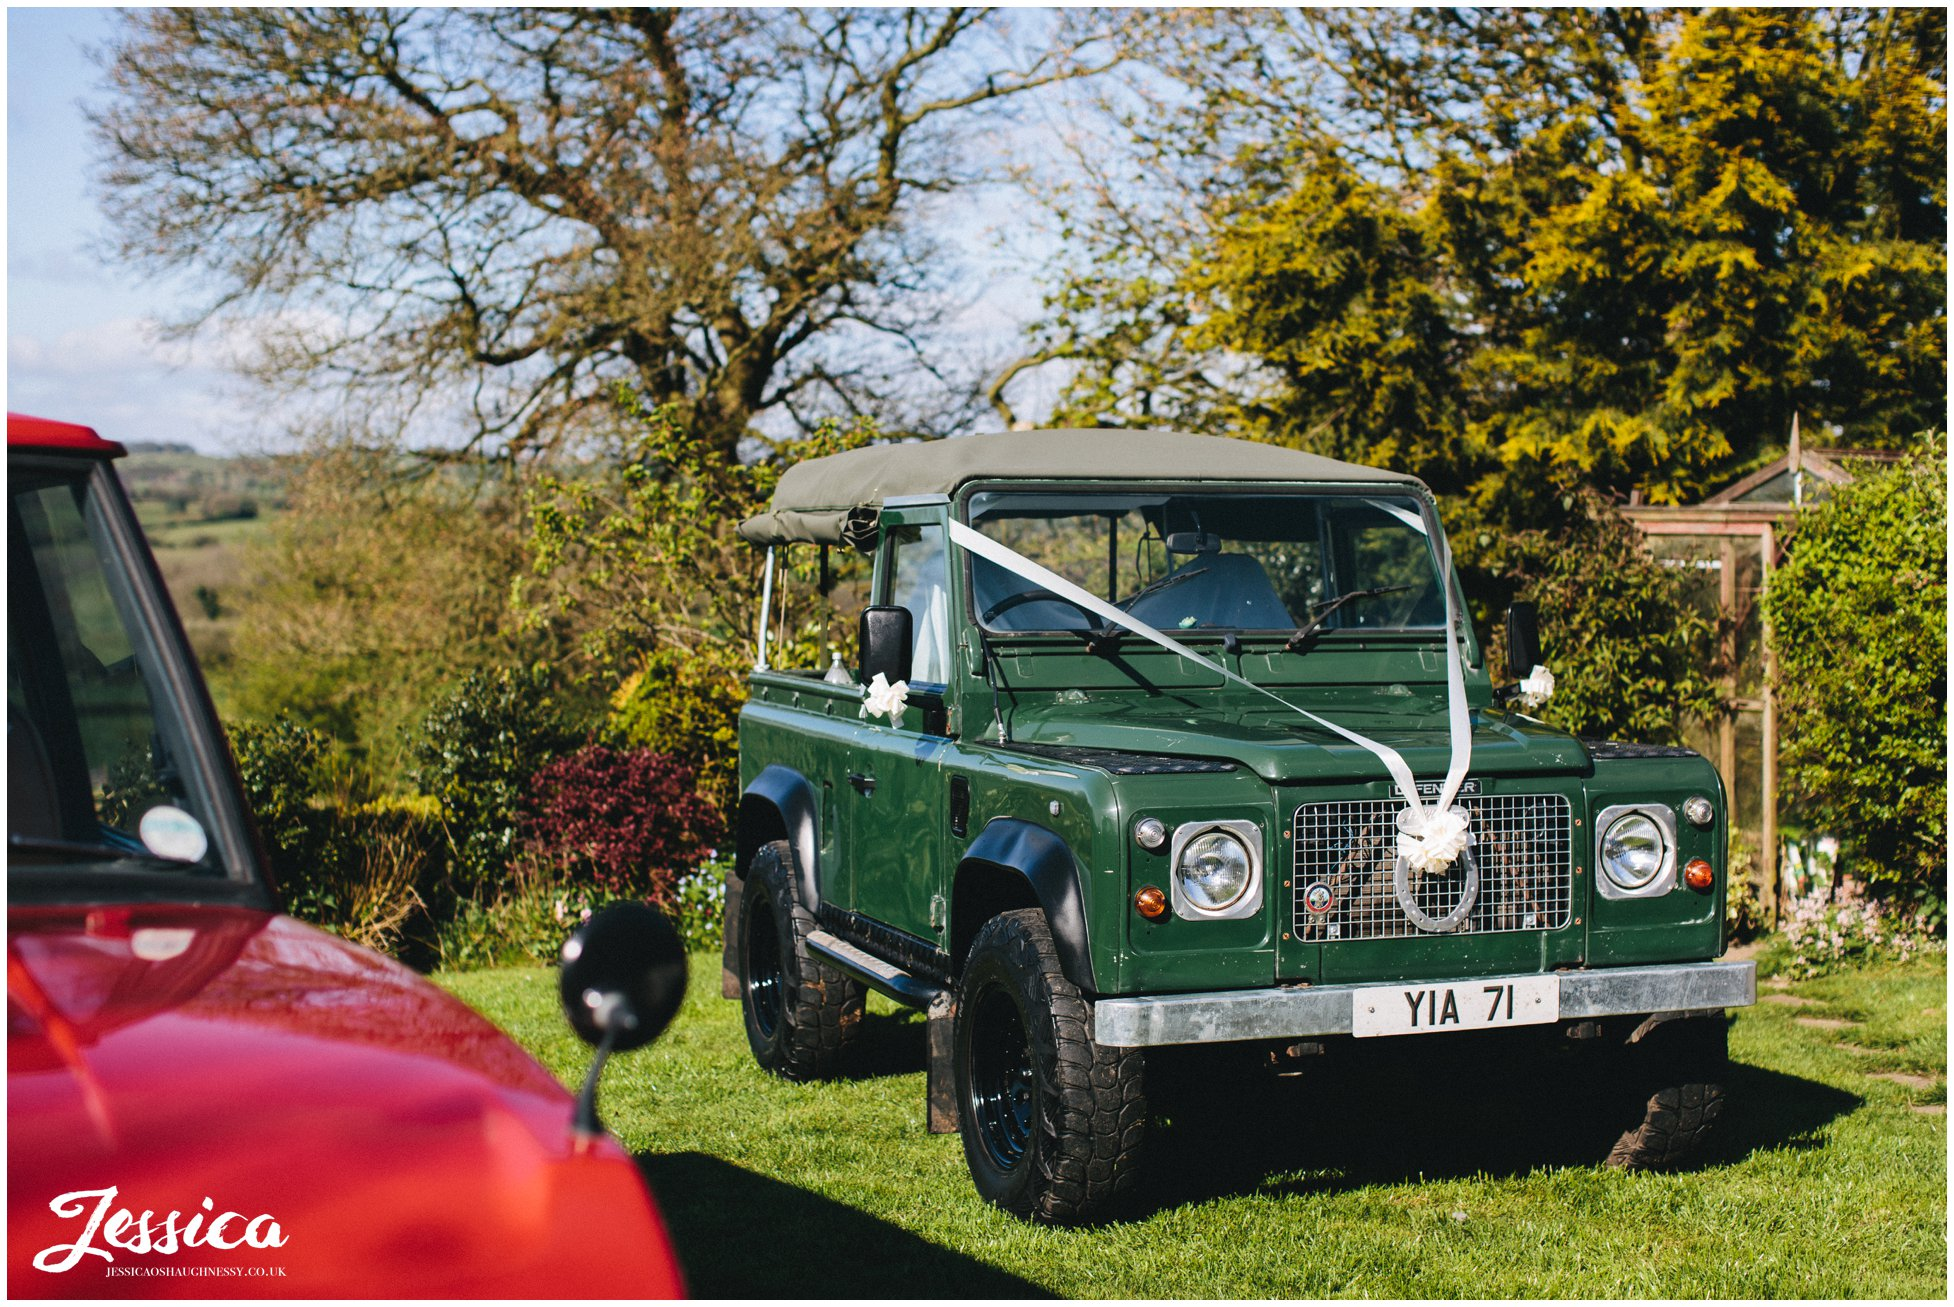 a green land rover to take the bride to the church